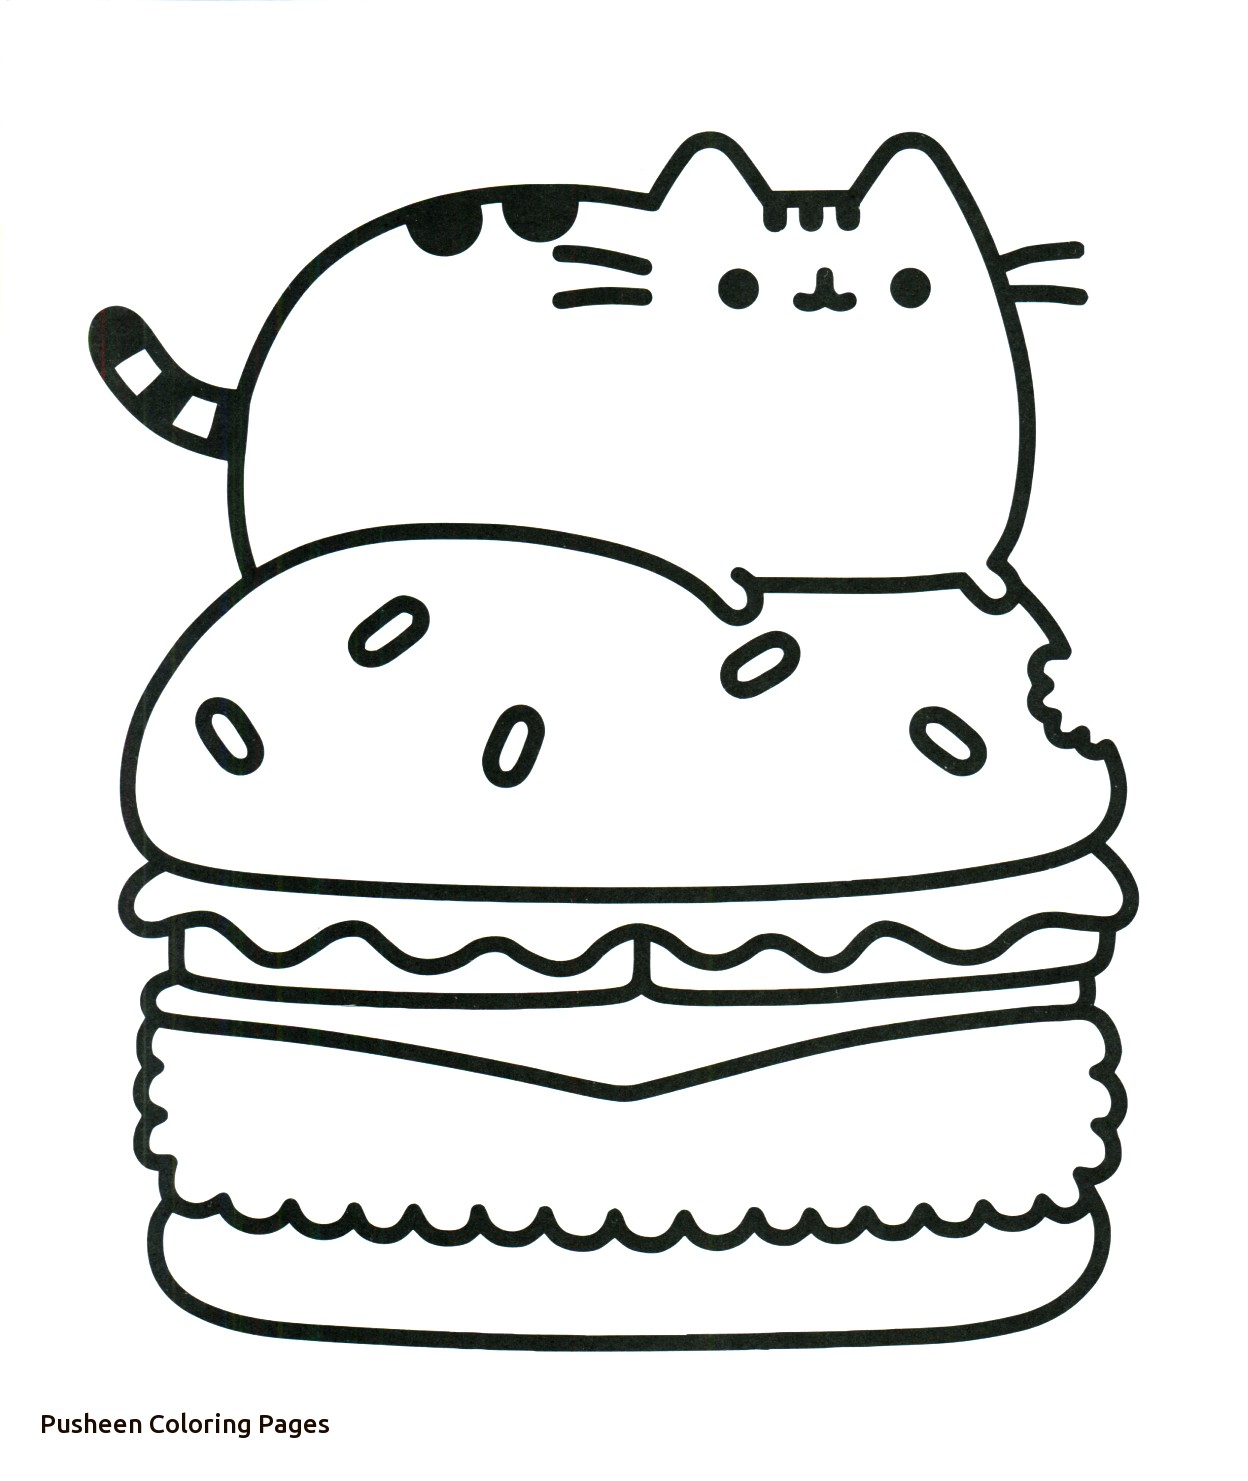 Coloring Pages : Kawaii Pusheen Coloring Pages Double To ...